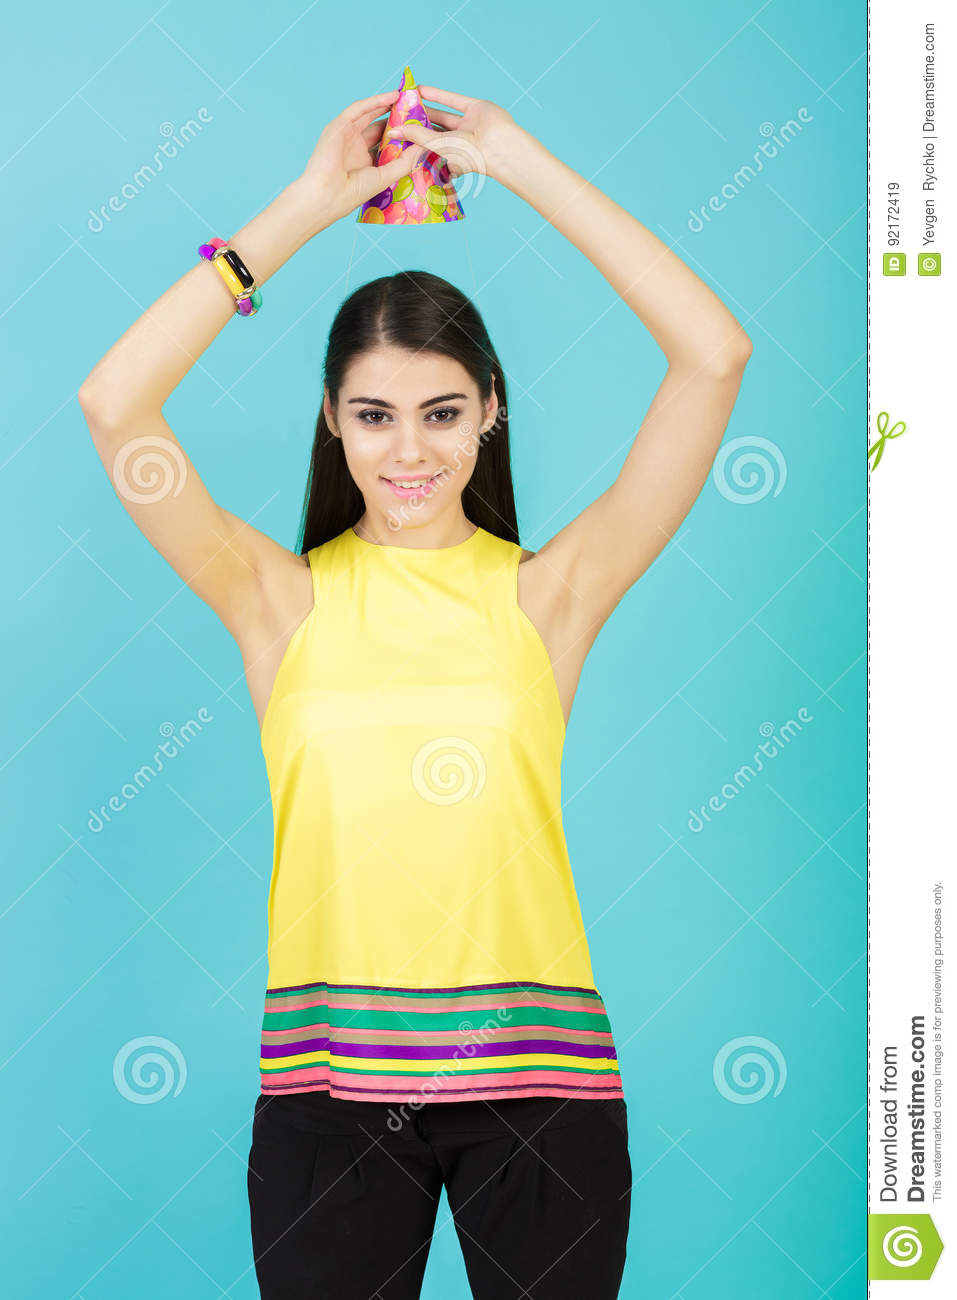 Young attractive smiling woman with birthday hat and whistle on blue background. celebration and party